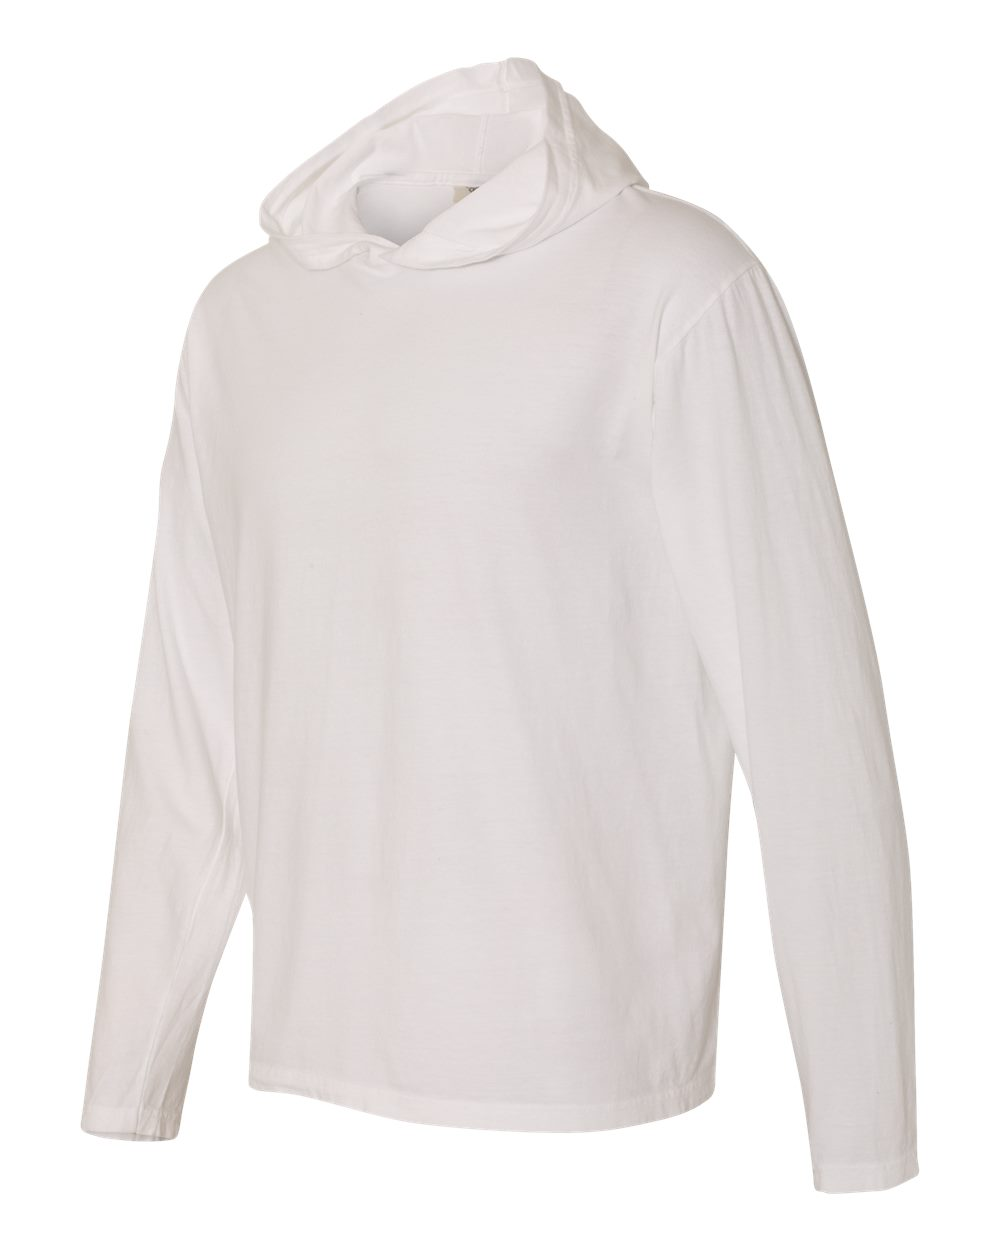 Comfort Colors 4900 - Garment Dyed Hooded Long Sleeve Tee